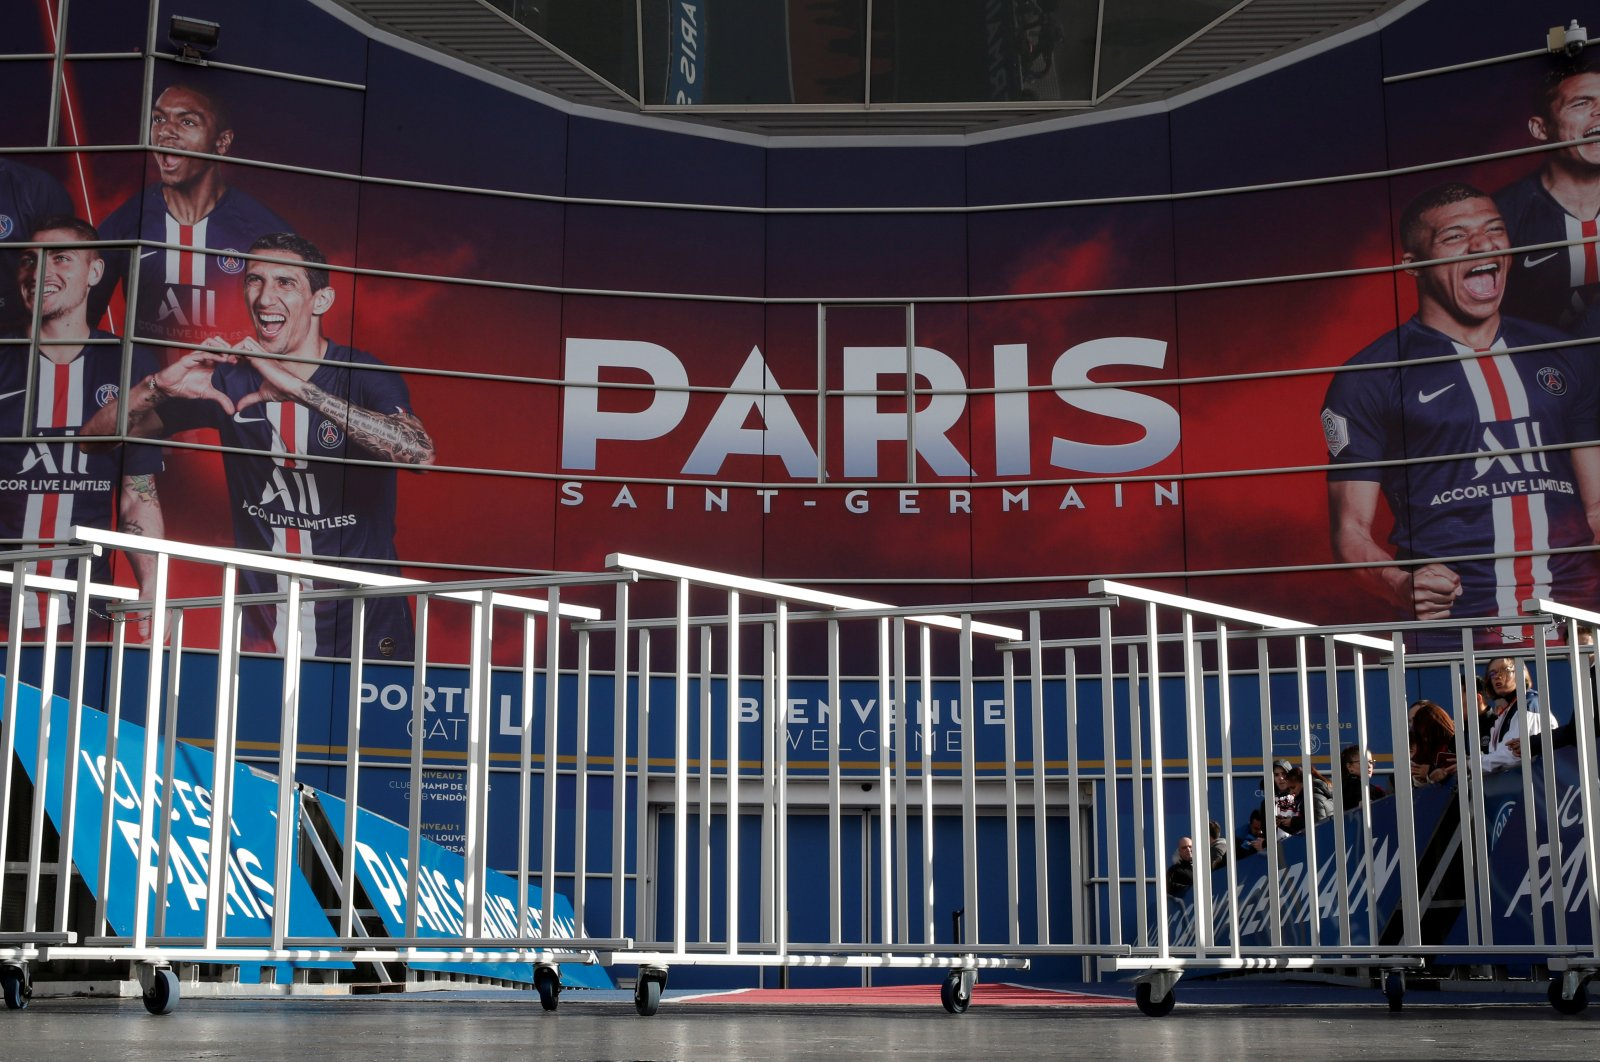 General view of the entrance outside the stadium, closed due to coronavirus precaution by the PSG organization, before the match, Paris, Feb. 29, 2020. (REUTERS Photo)